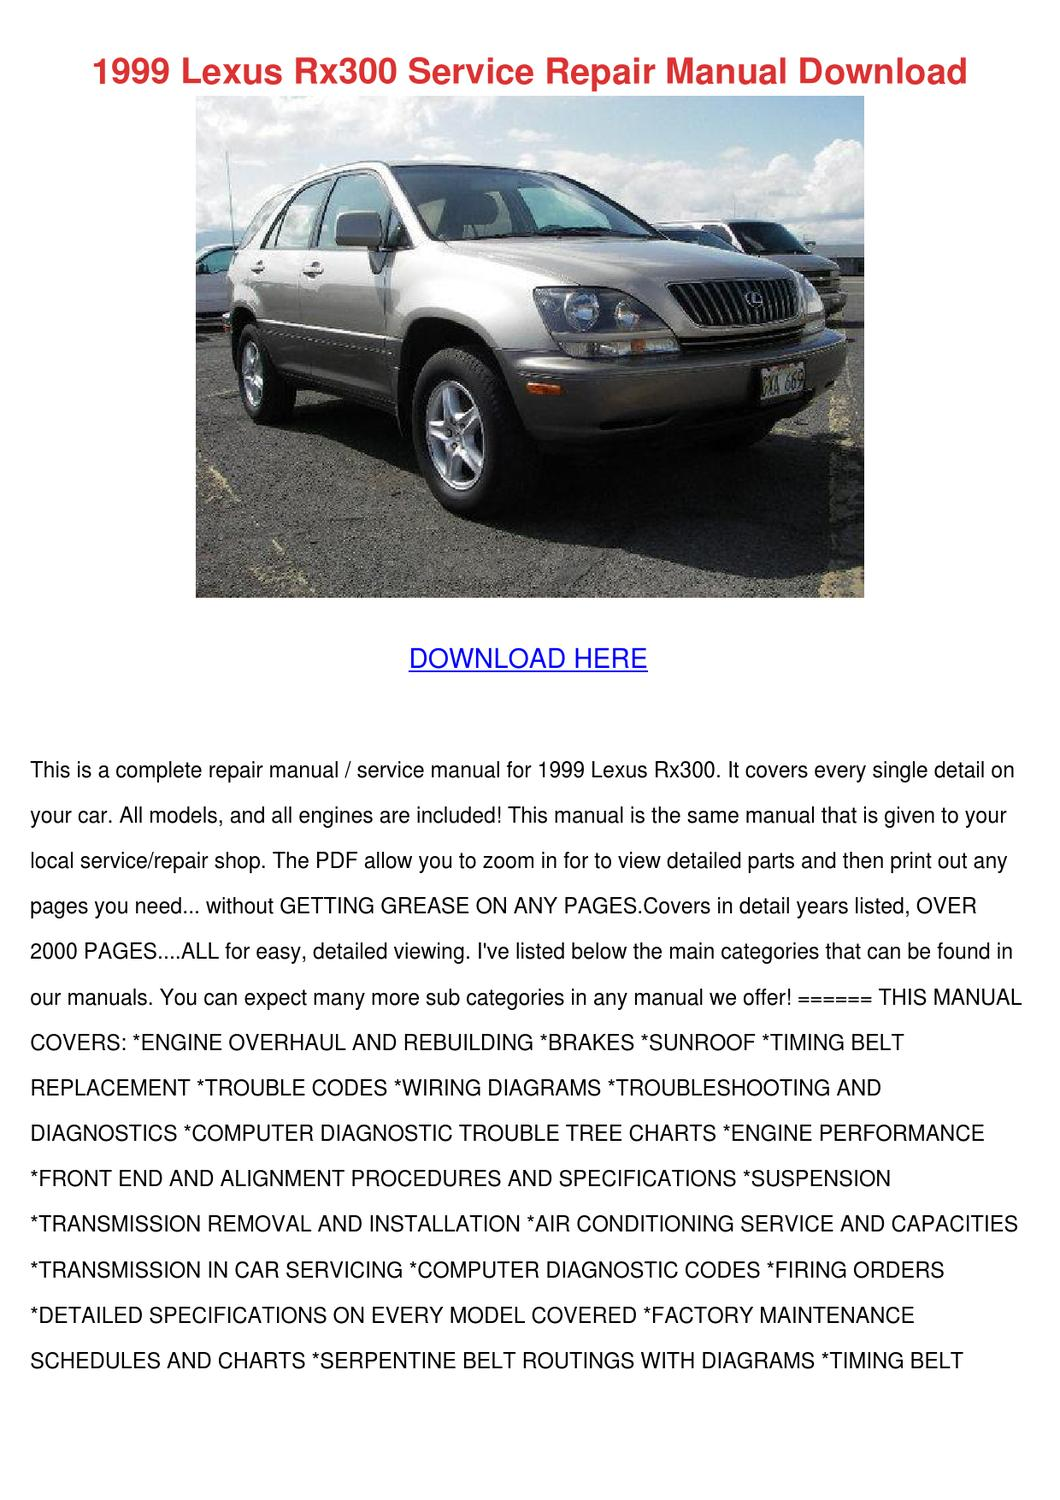 1999 Lexus Rx300 Service Repair Manual Downlo by GinaFitts - issuu